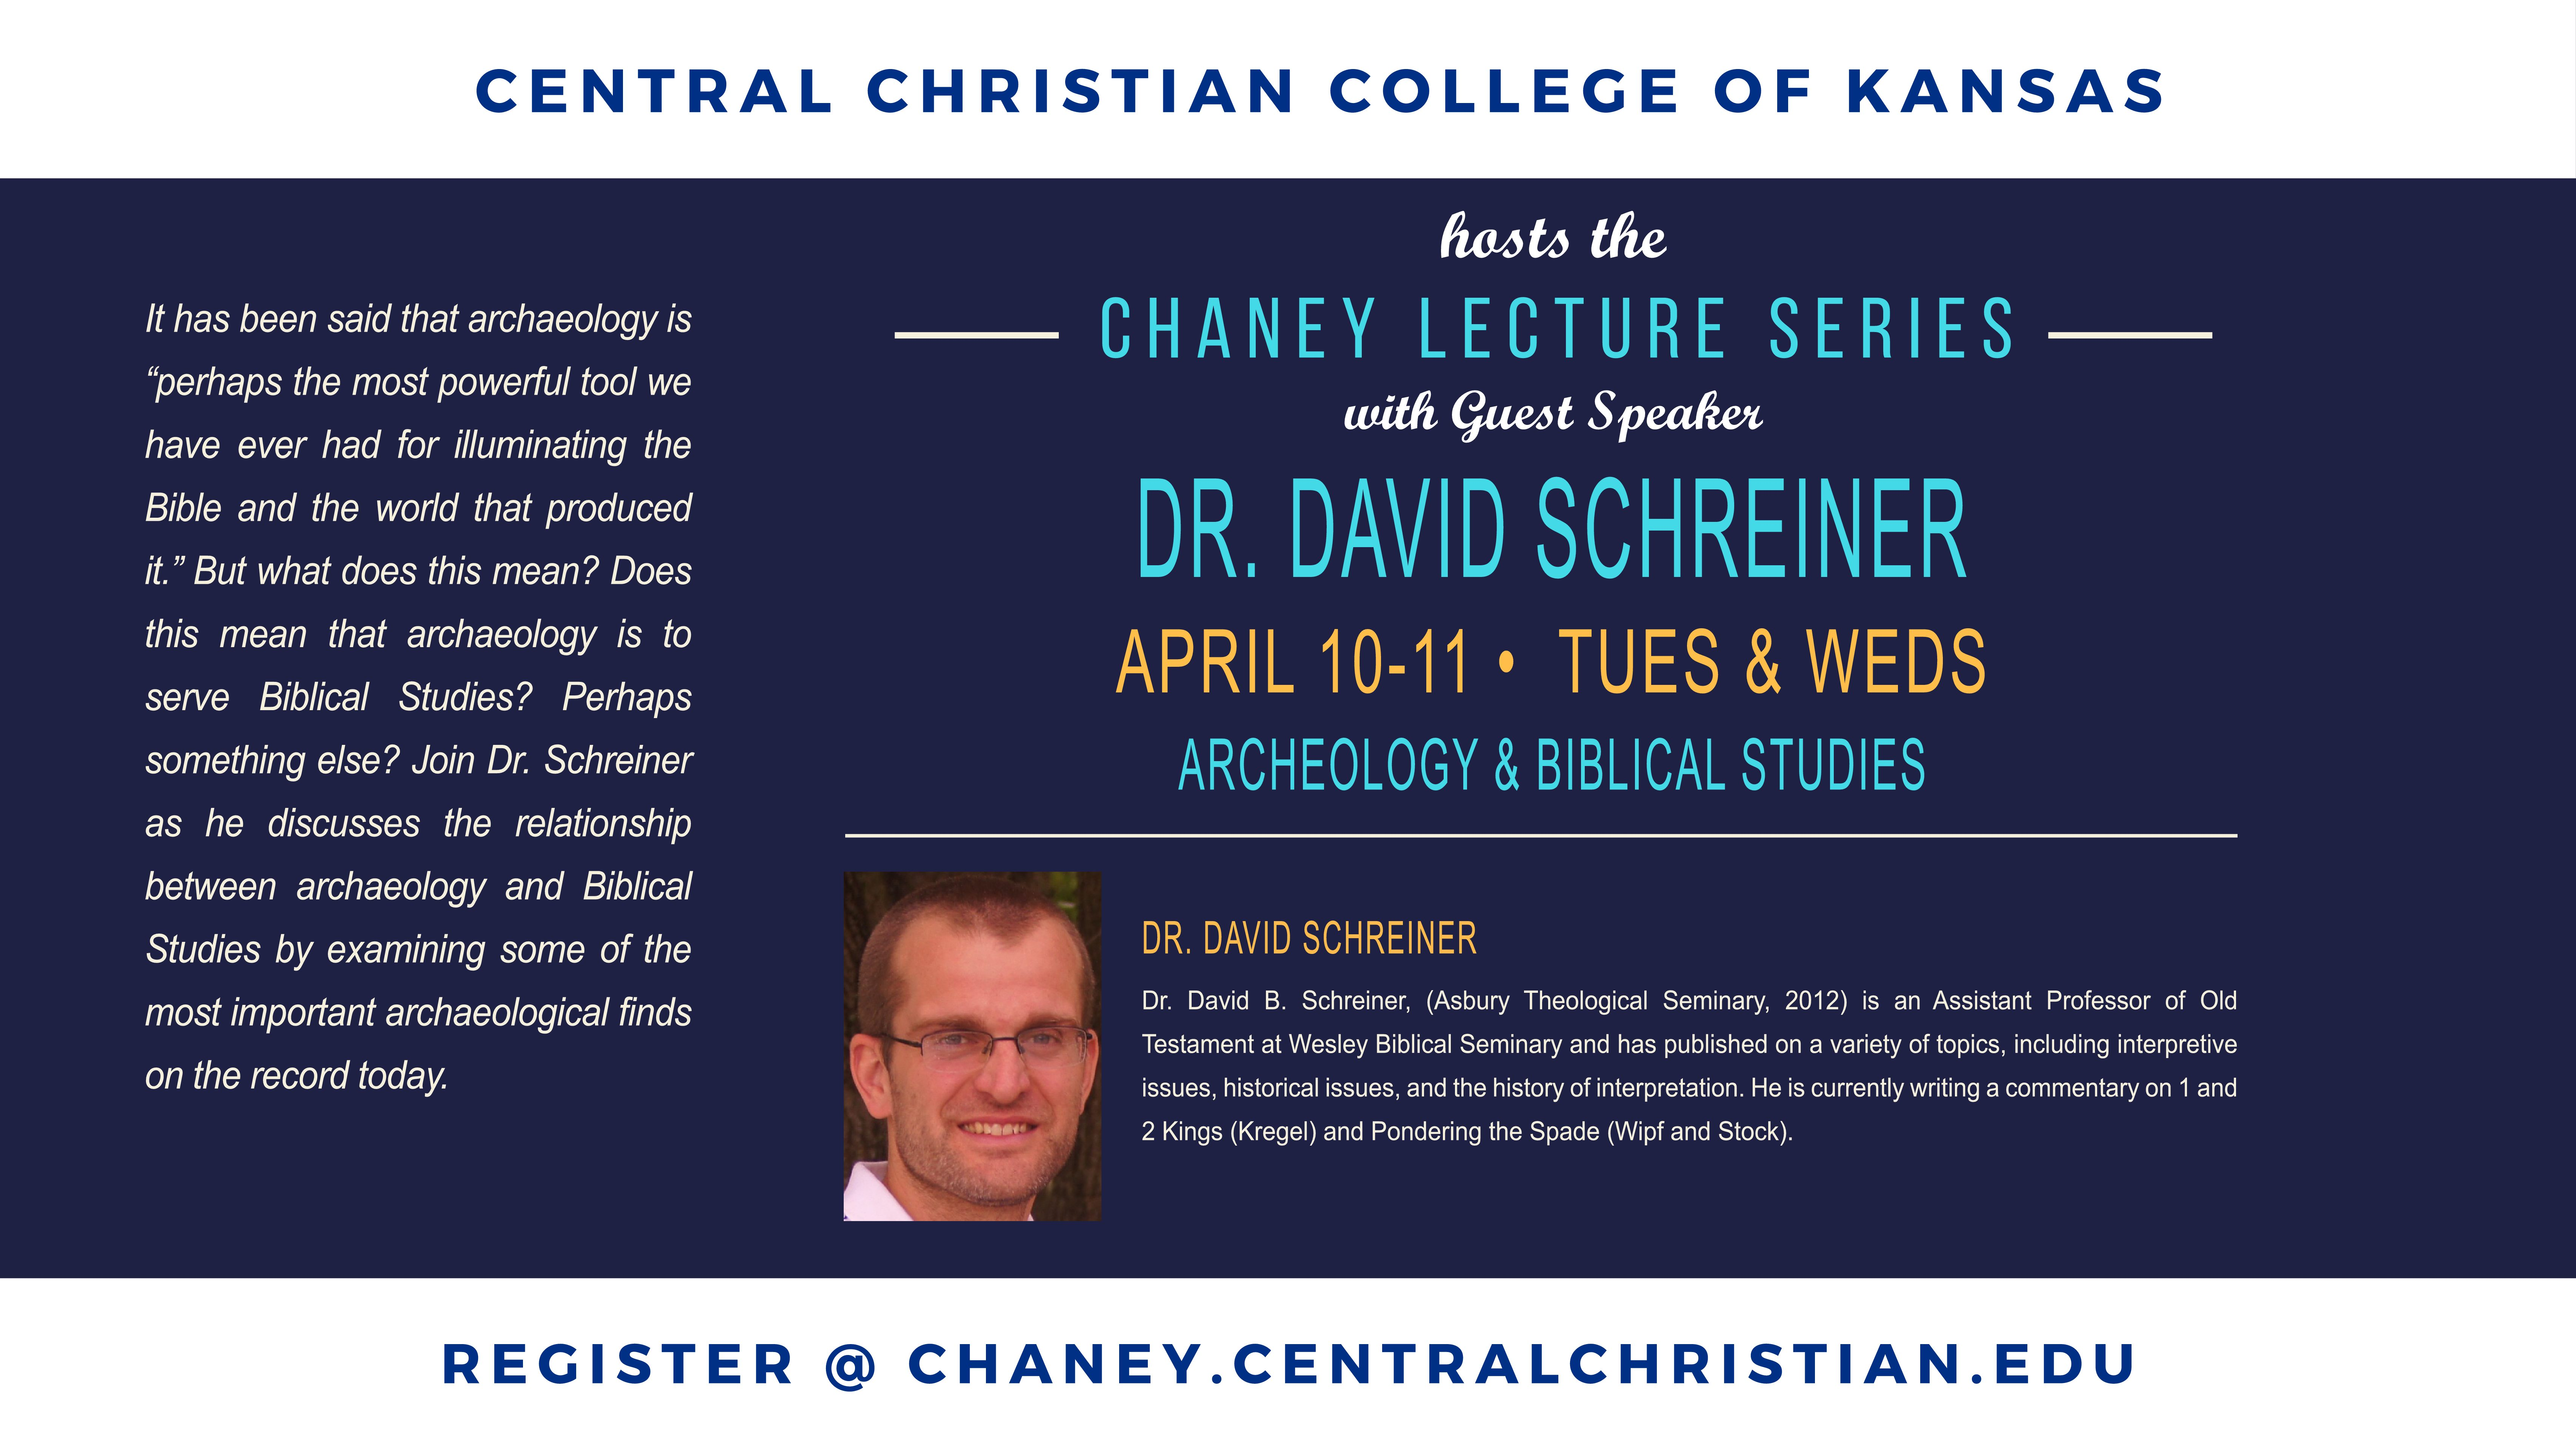 Central Christian College of Kansas proudly hosts the Chaney